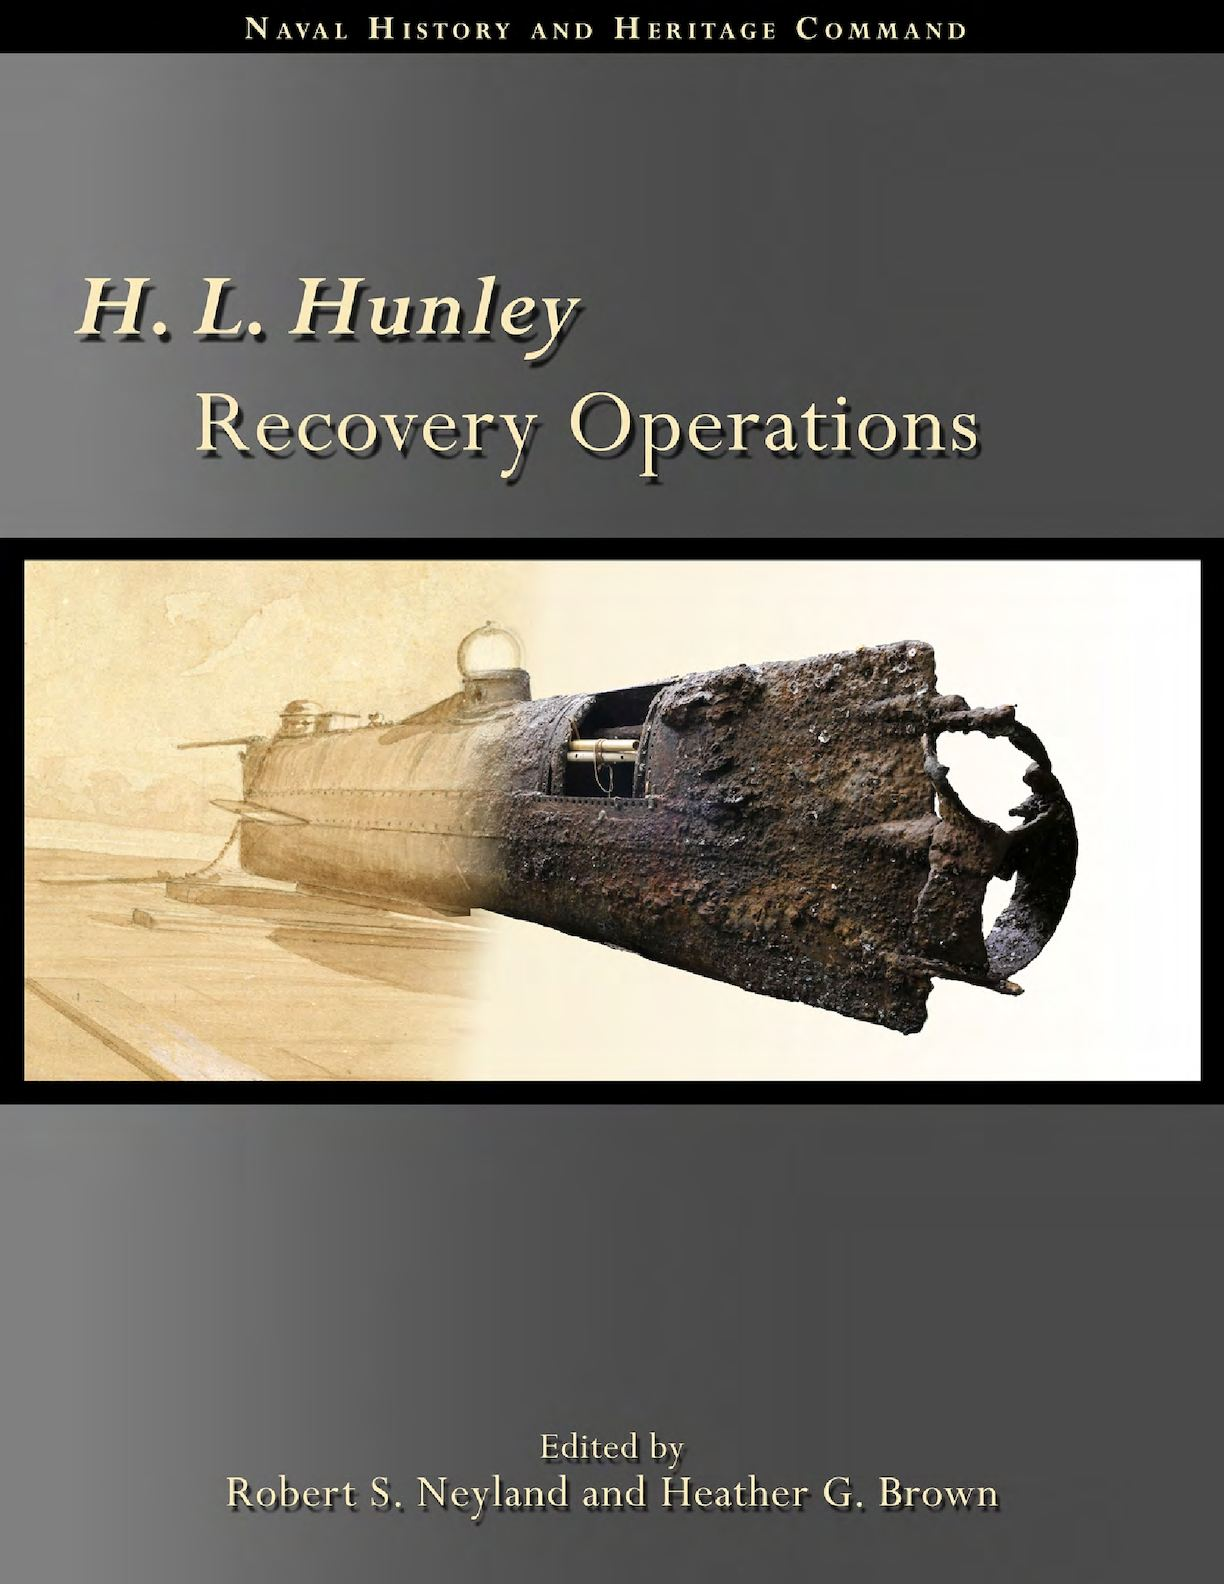 Calamo Hlhunley Recovery Operations 20161123 Final Revised With Cover Body Side Dop Accu Ts 125 Pvc Set Sm